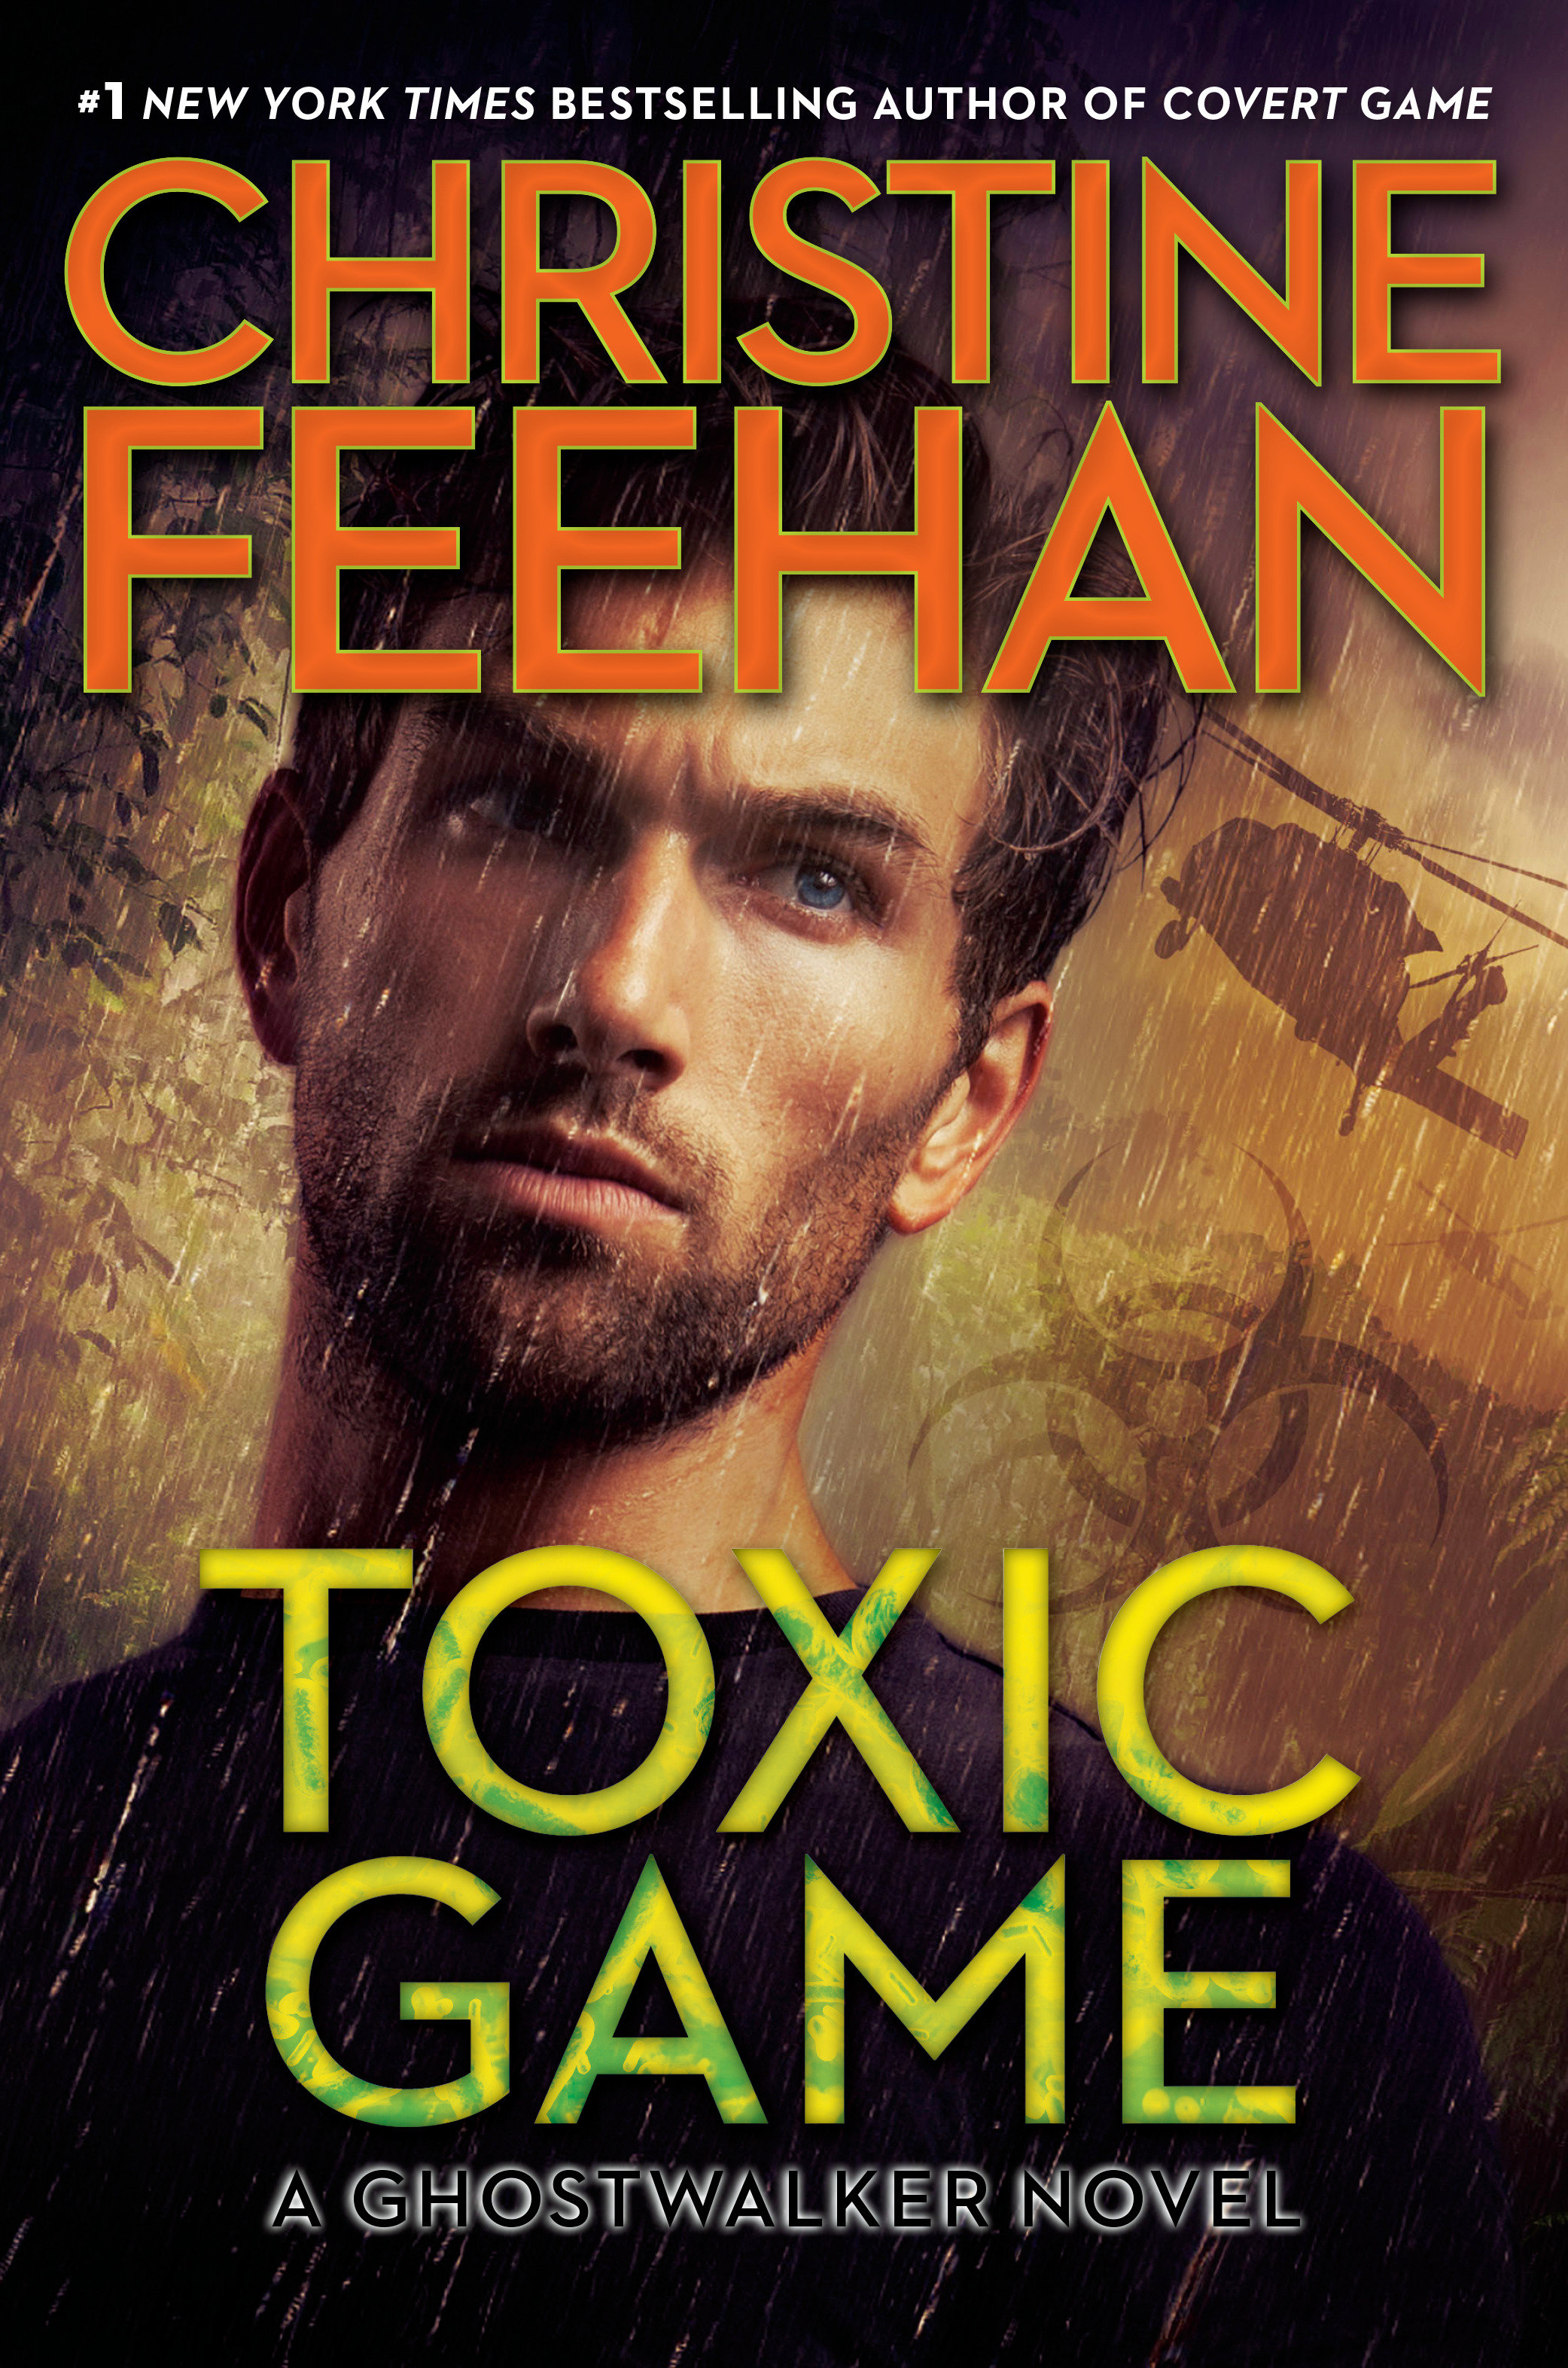 Toxic game cover image